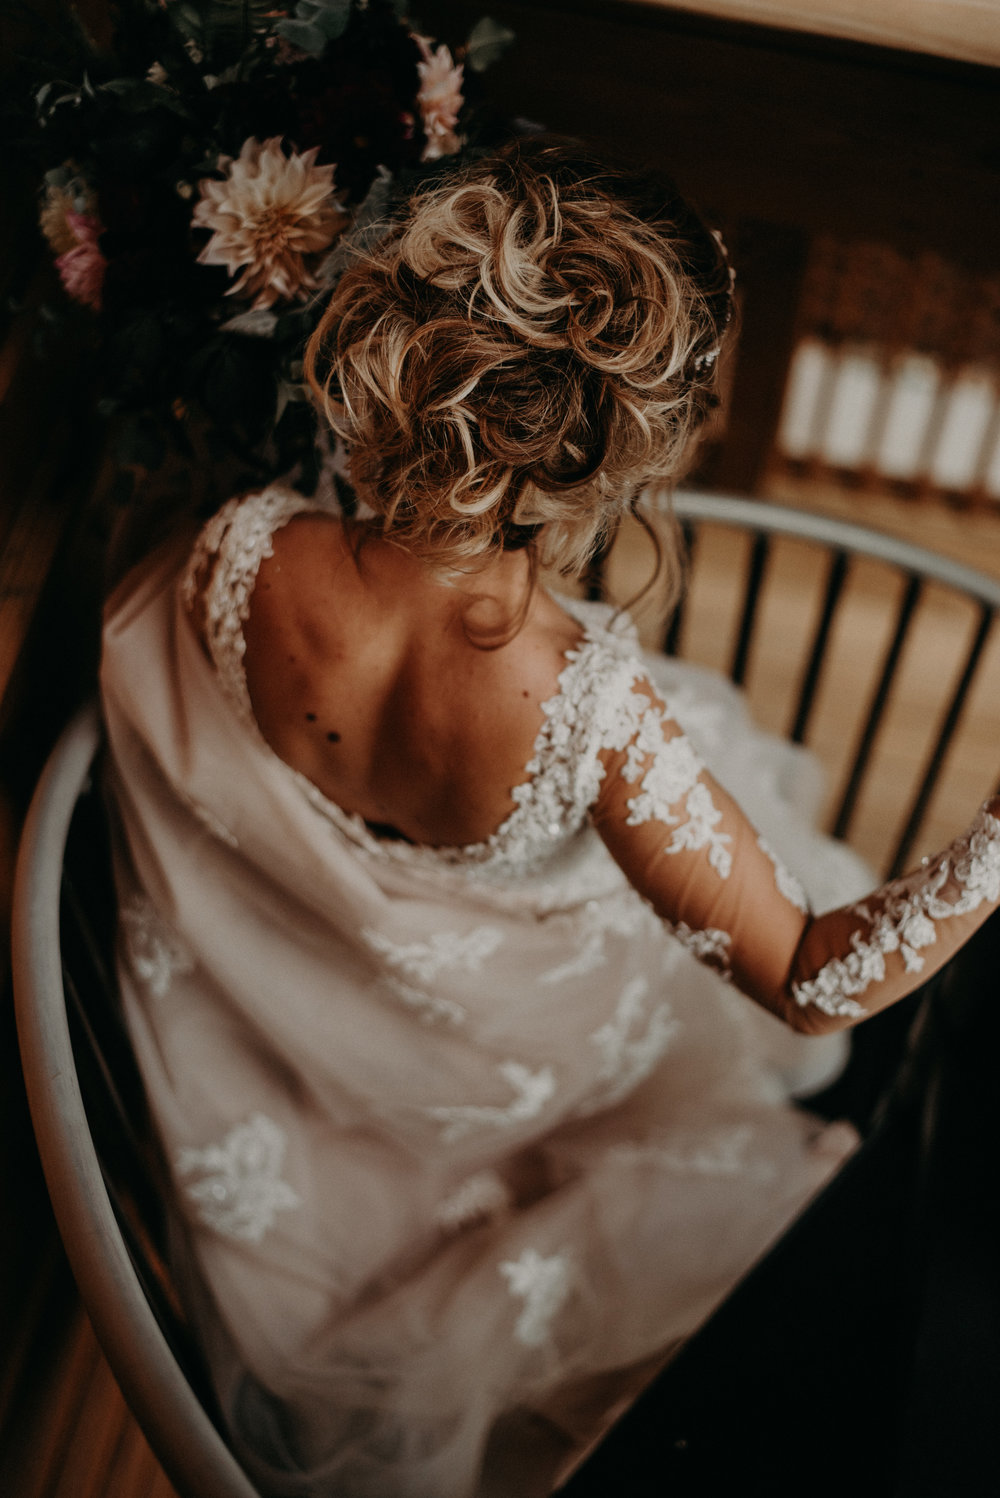 Bridal Details and Wedding Gown at Parkside Resort in Smoky Mountains